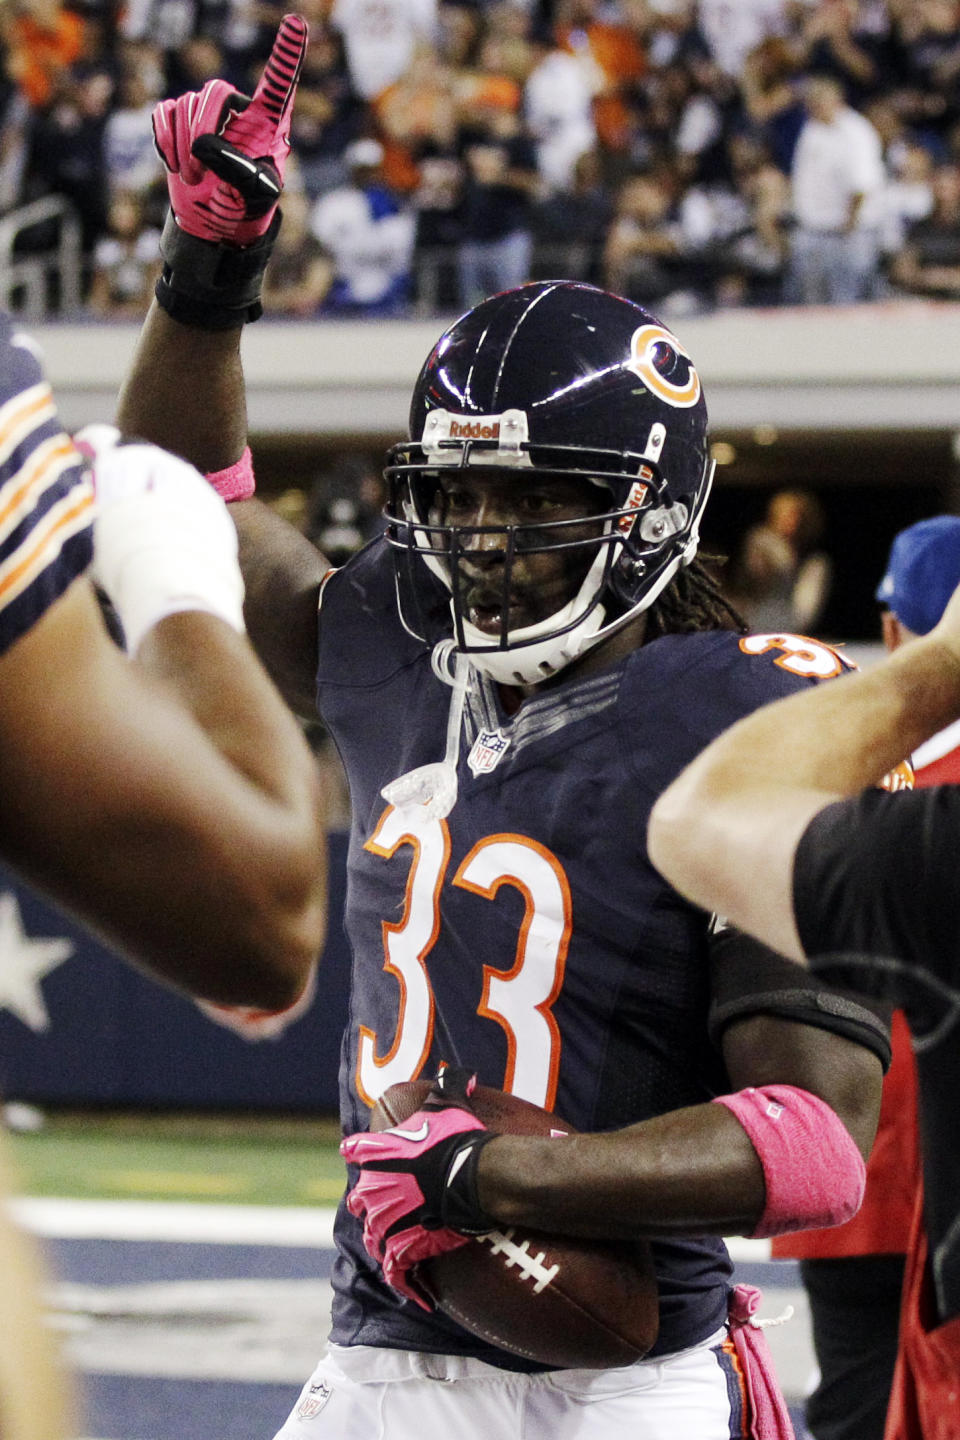 Chicago Bears cornerback Charles Tillman celebrates after returning an interception for a touchdown during the first half of an NFL football game against the Dallas Cowboys, Monday, Oct. 1, 2012, in Arlington, Texas. (AP Photo/Tony Gutierrez)